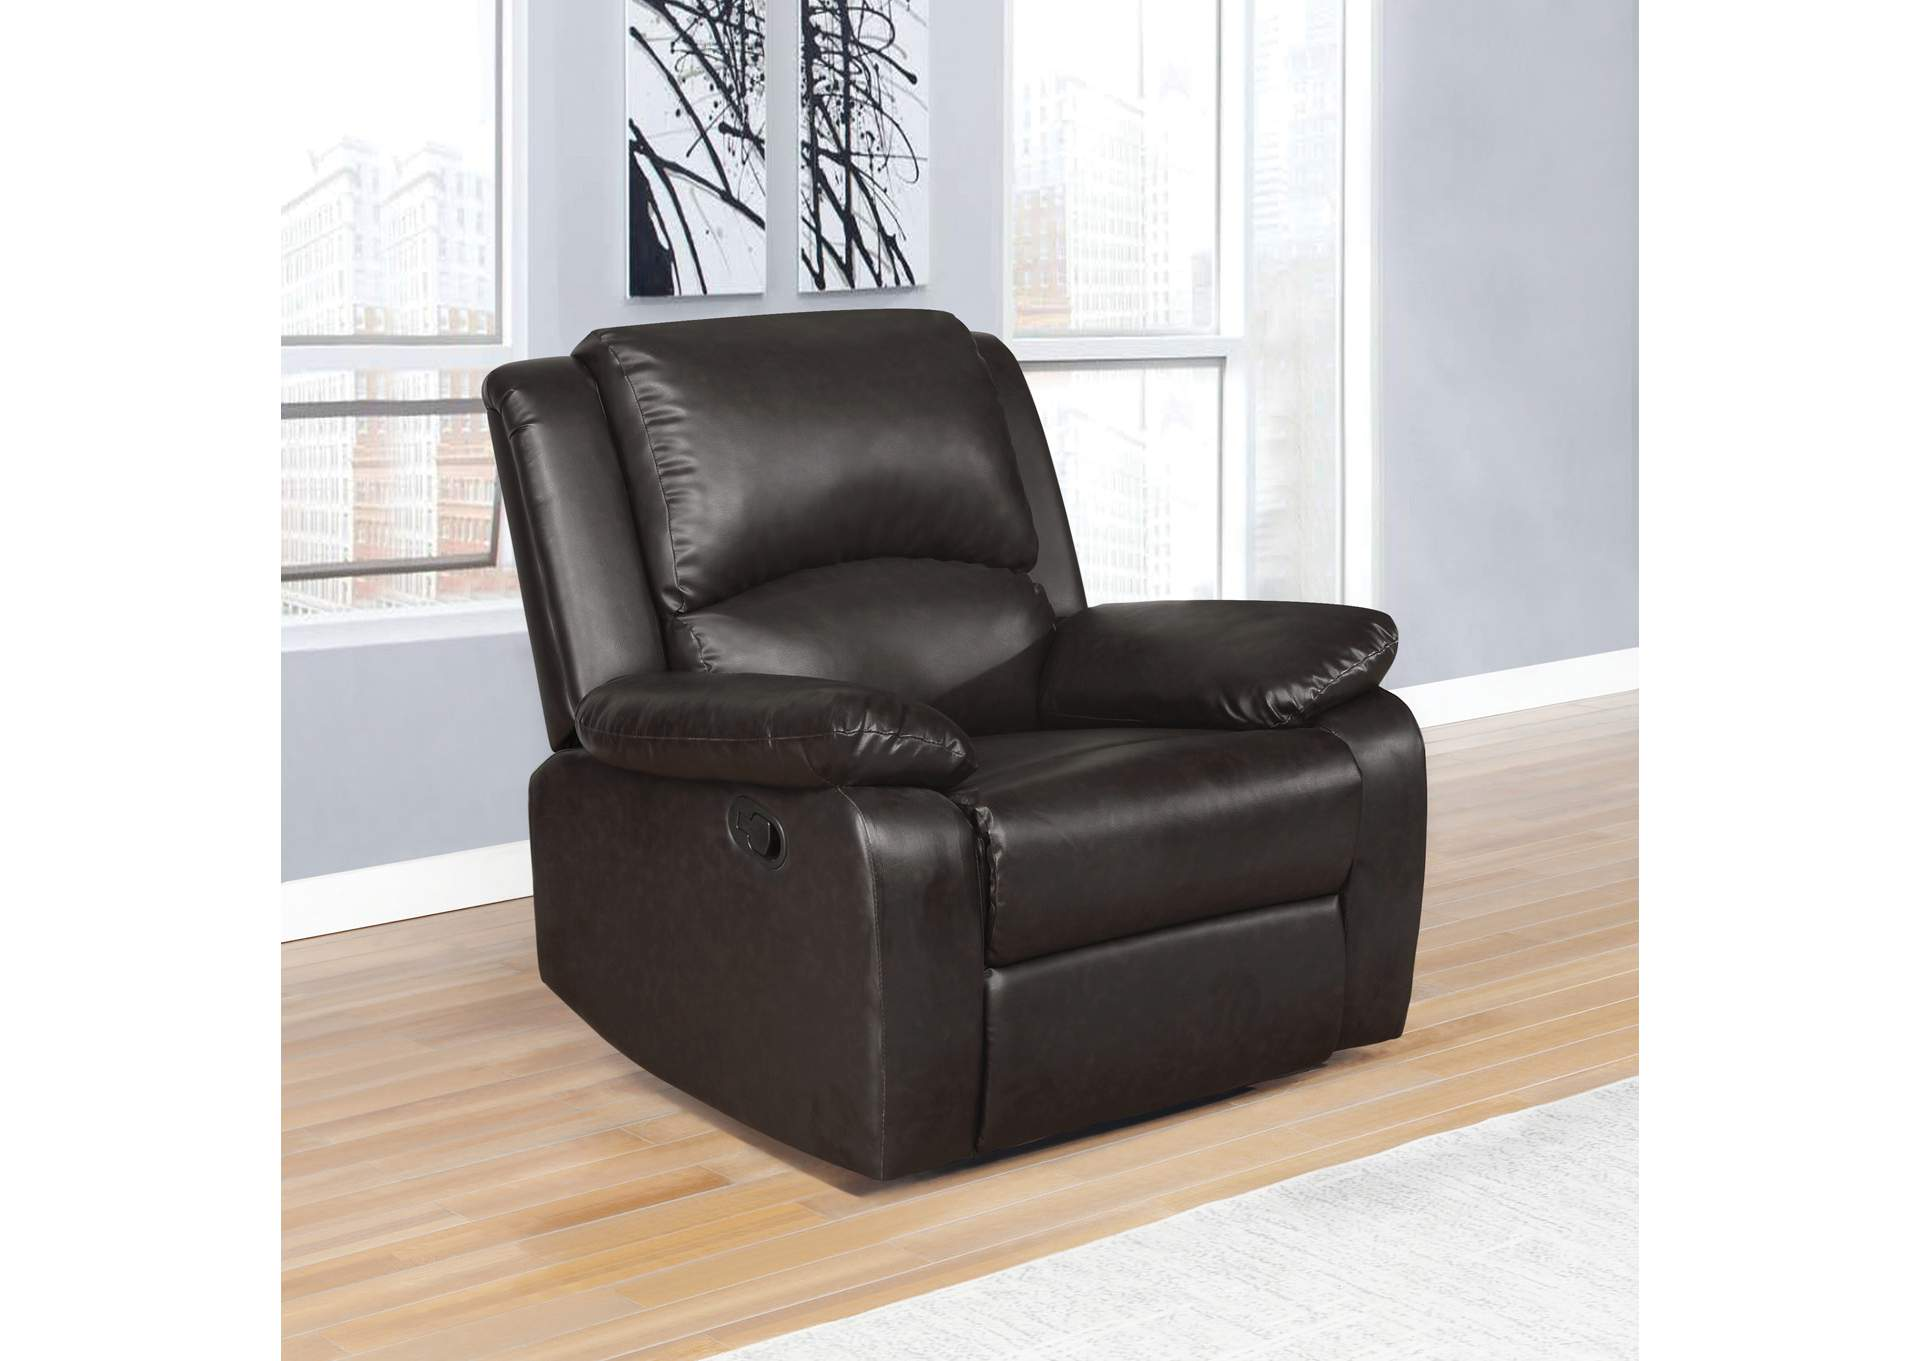 Tallahassee Discount Furniture Tallahassee Fl Boston Brown Rocker Recliner